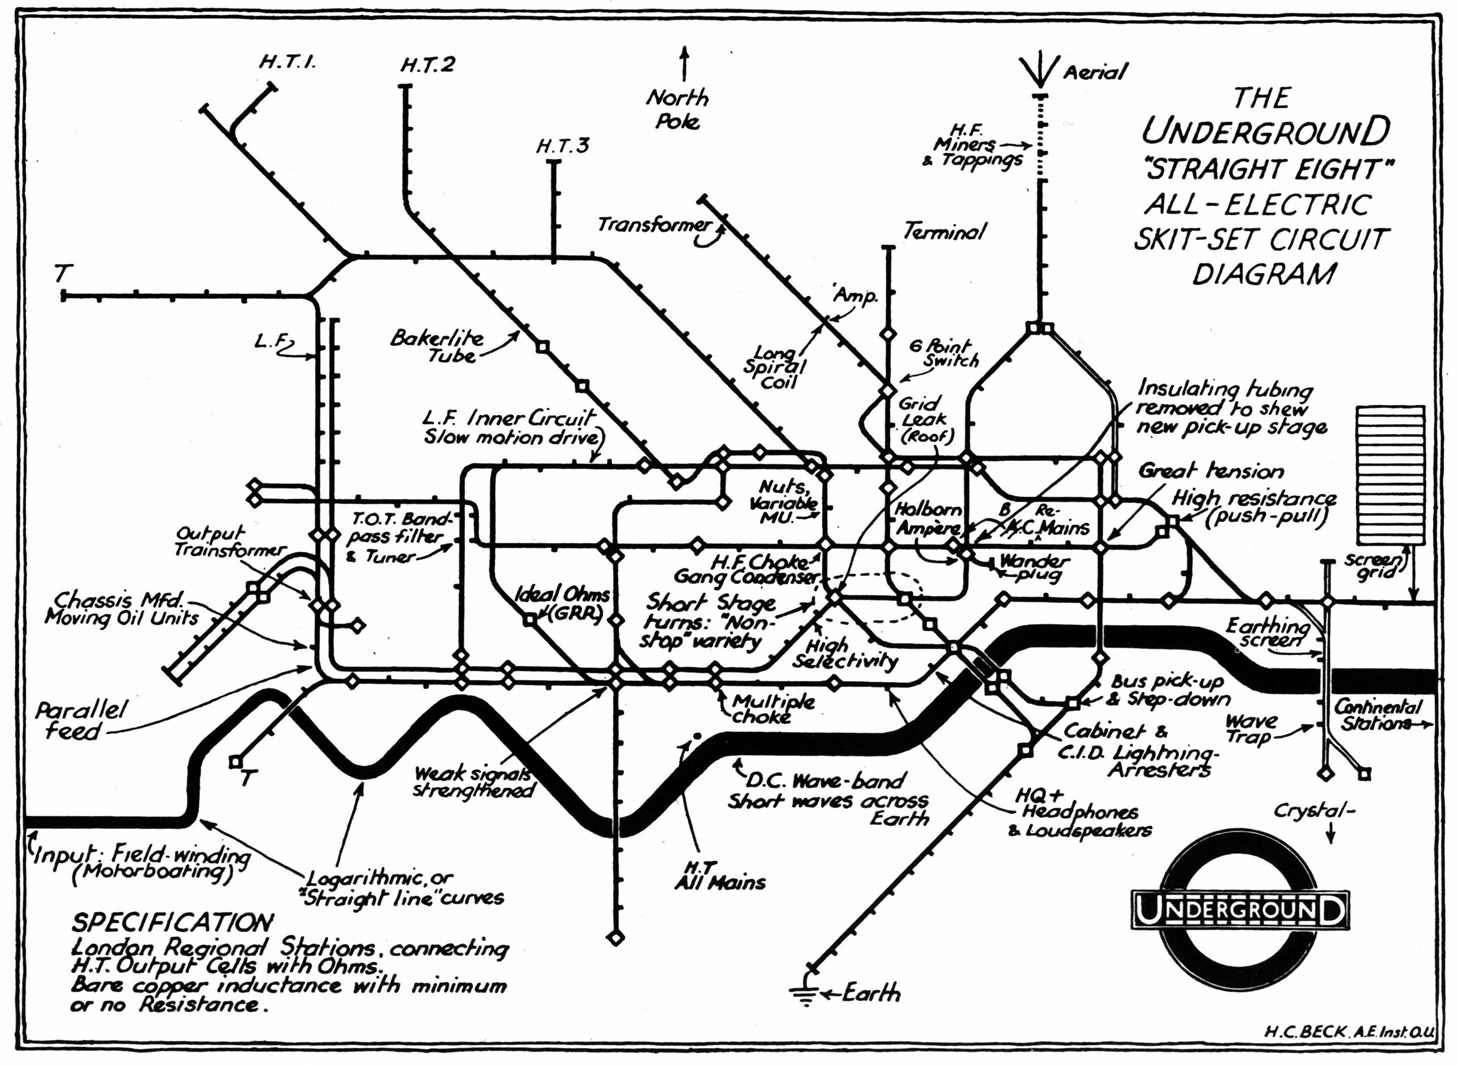 Henry Charles Beck Material Culture And The London Tube Map Of 1933 If You Are Looking For Formal Wiring Diagram 4 Underground Straight Eight All Electric Skit Set Circuit March Drawing In Train Omnibus Tram Staff Magazine